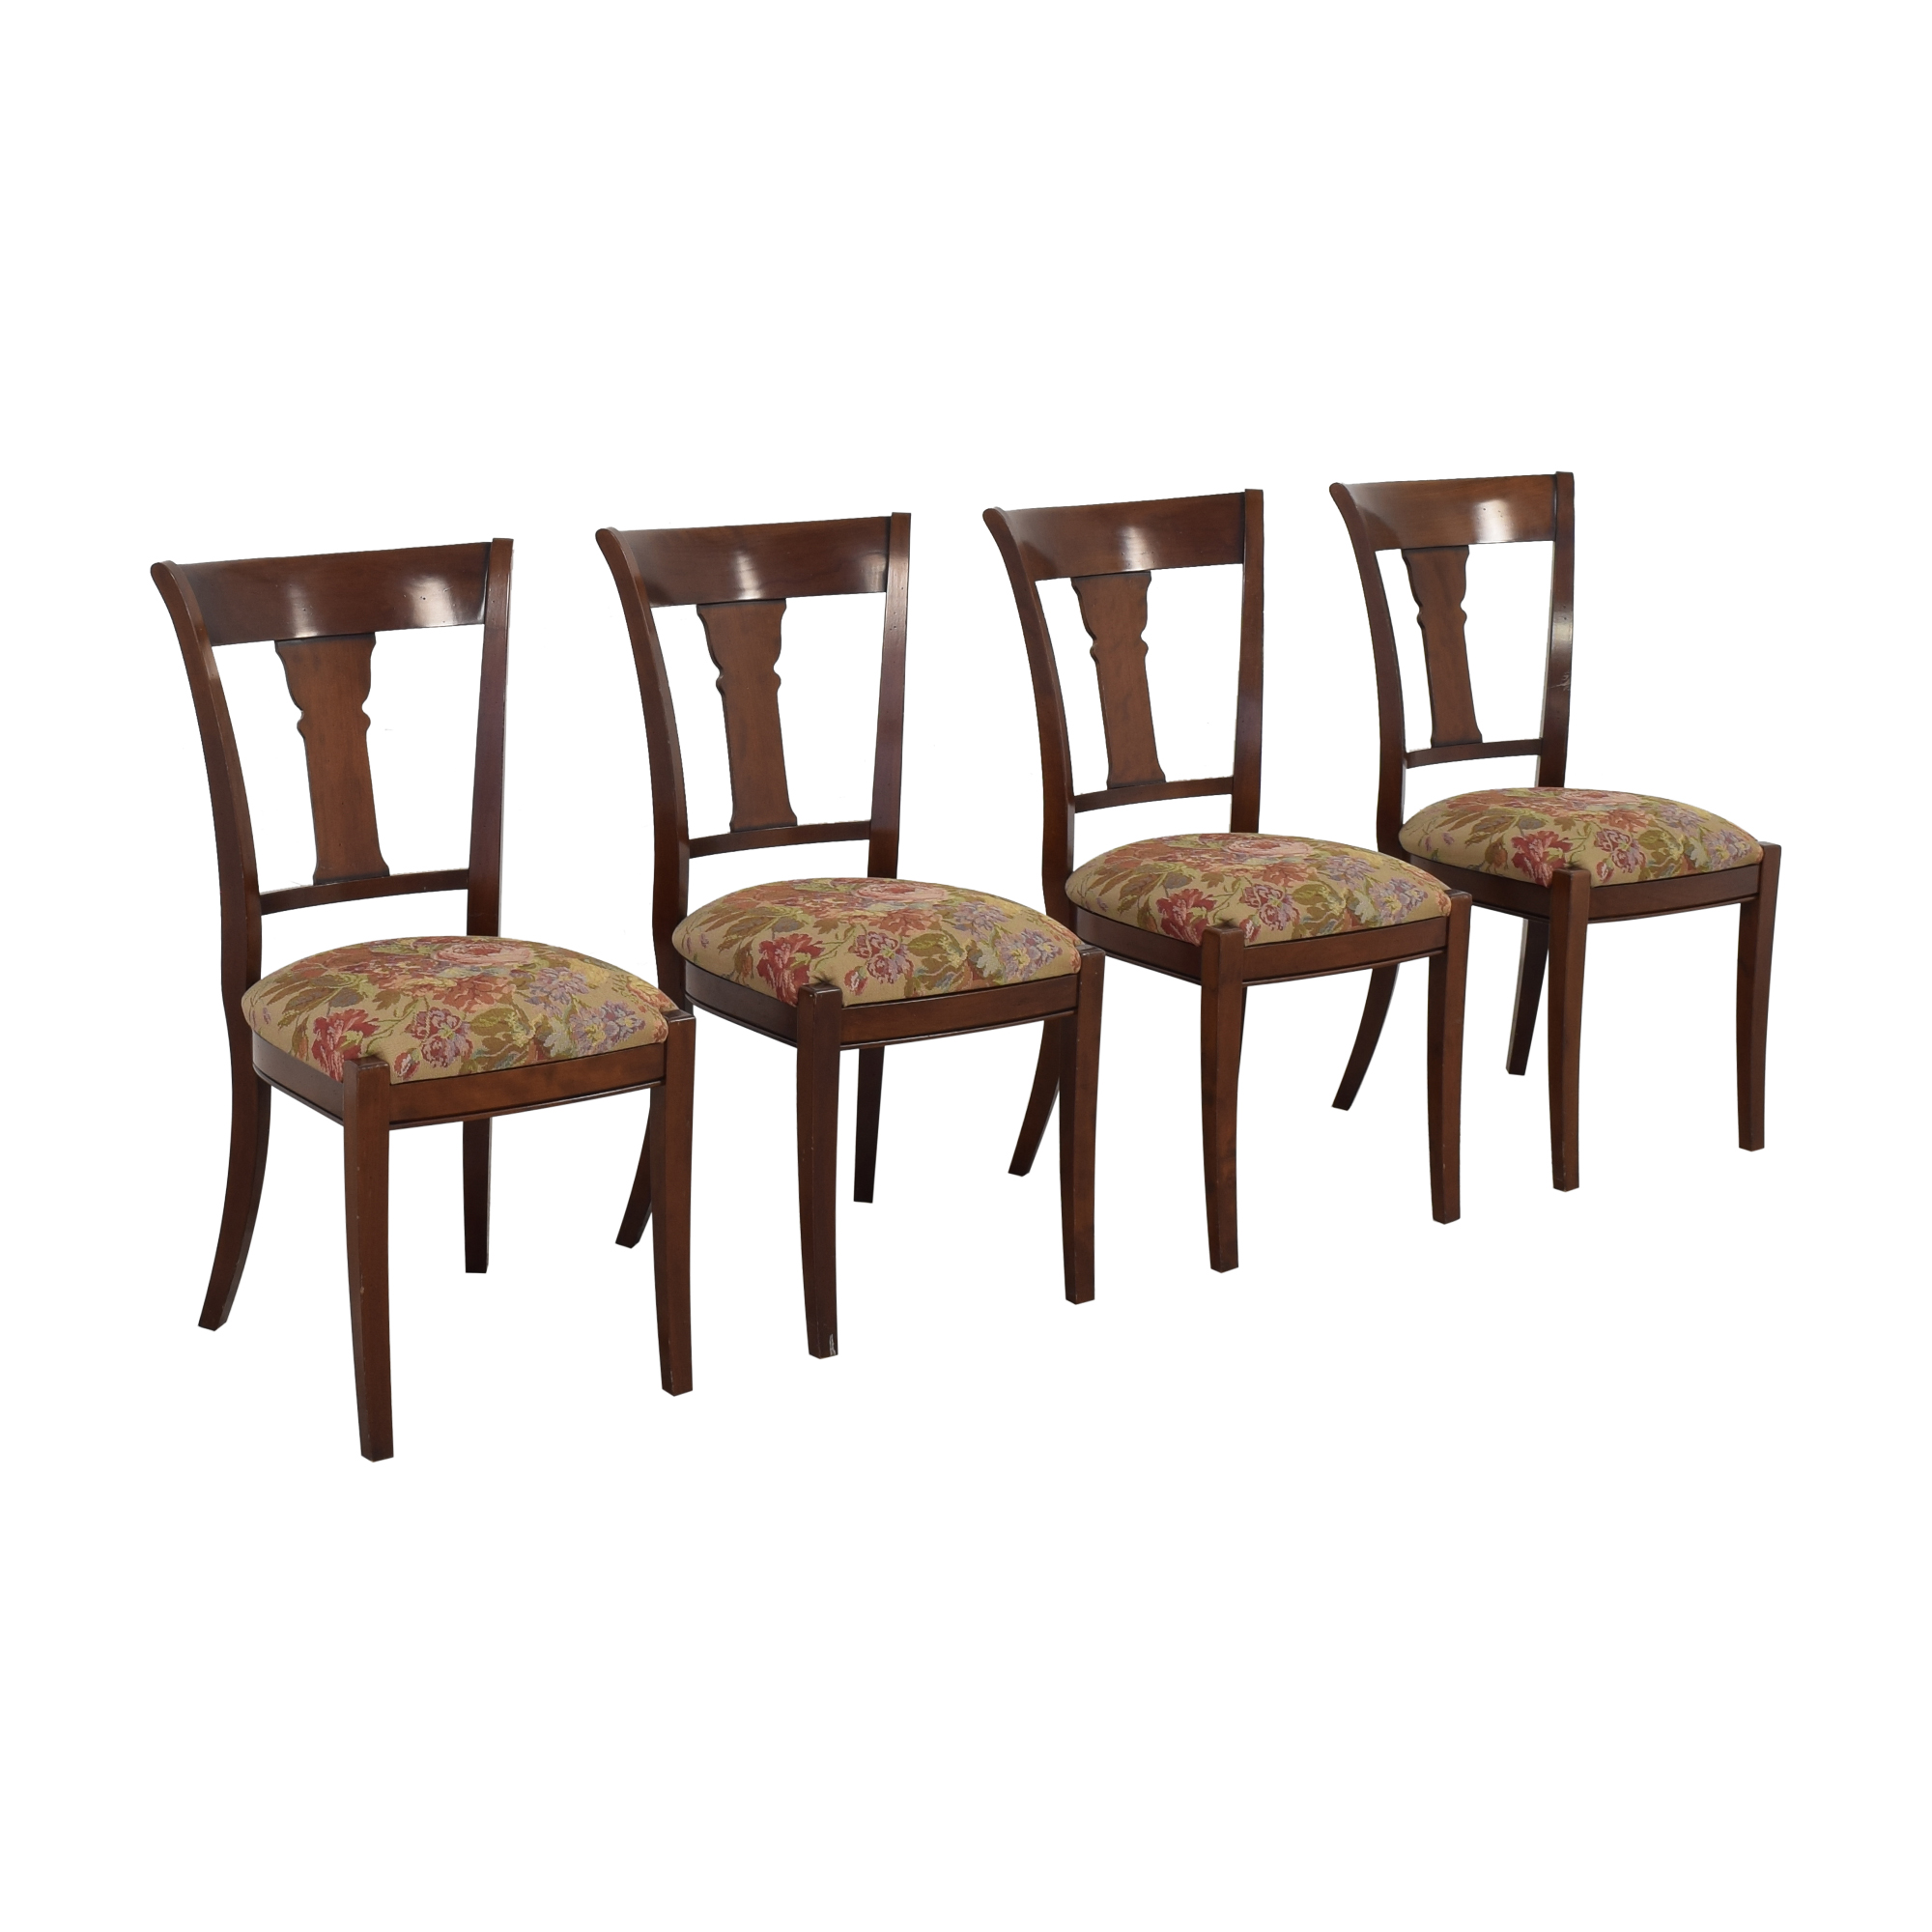 Grange Grange Upholstered Dining Chairs Dining Chairs